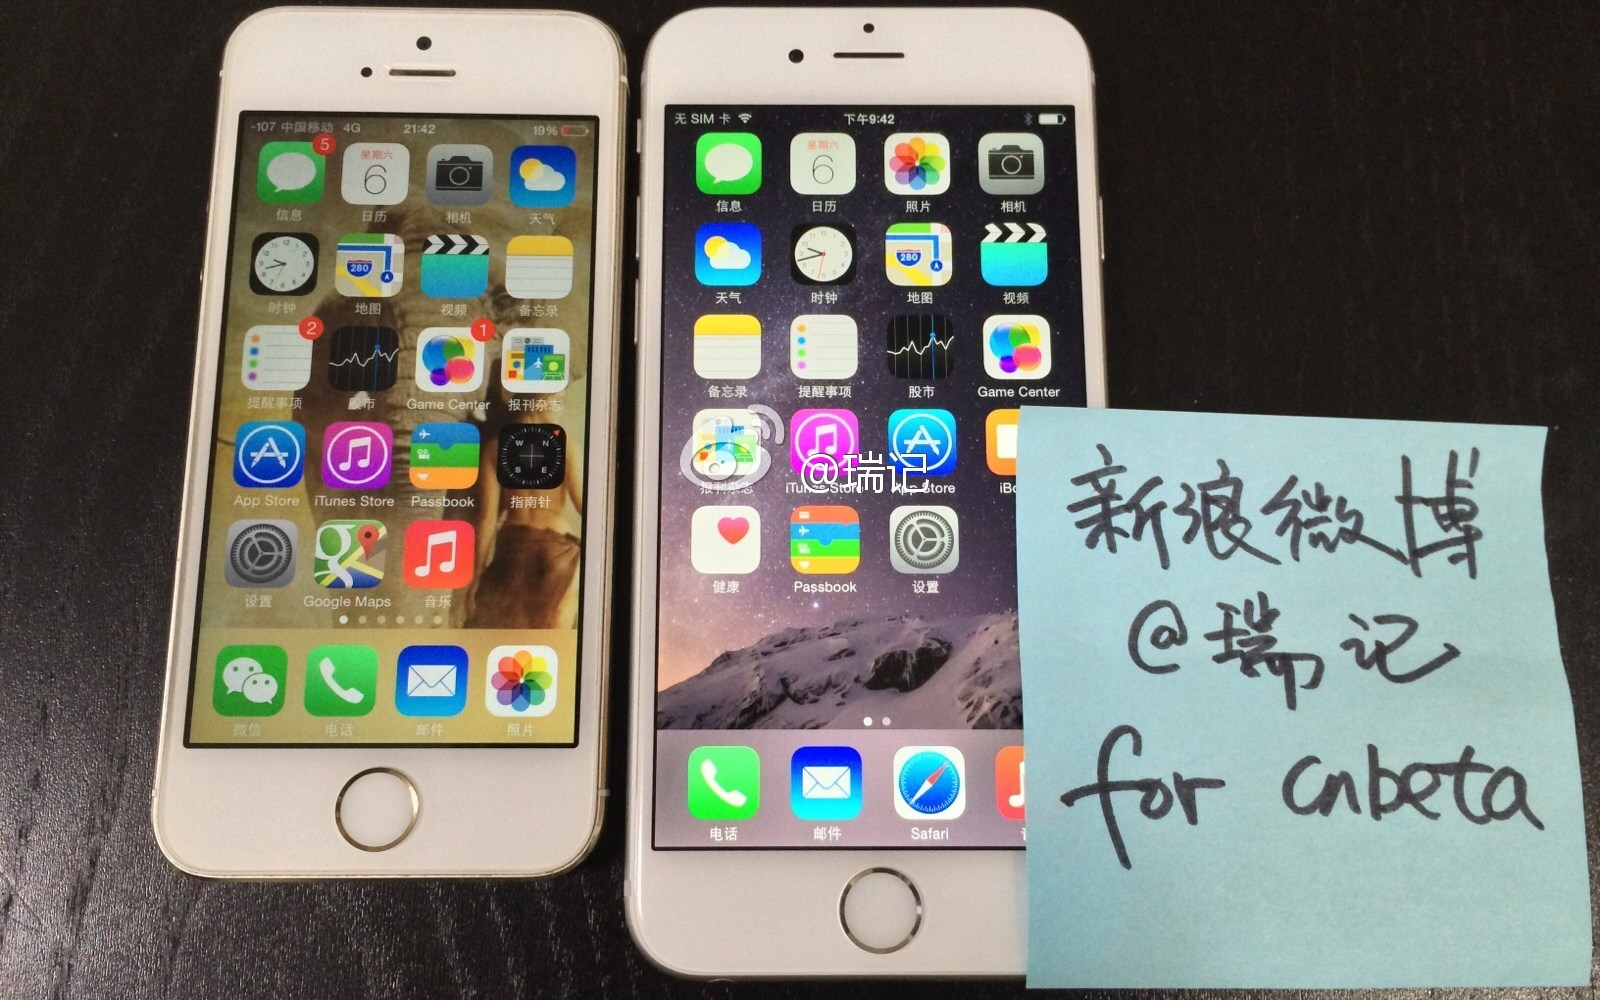 Purported working iPhone 6 appears online, shows new Passbook icon depicting mobile payments